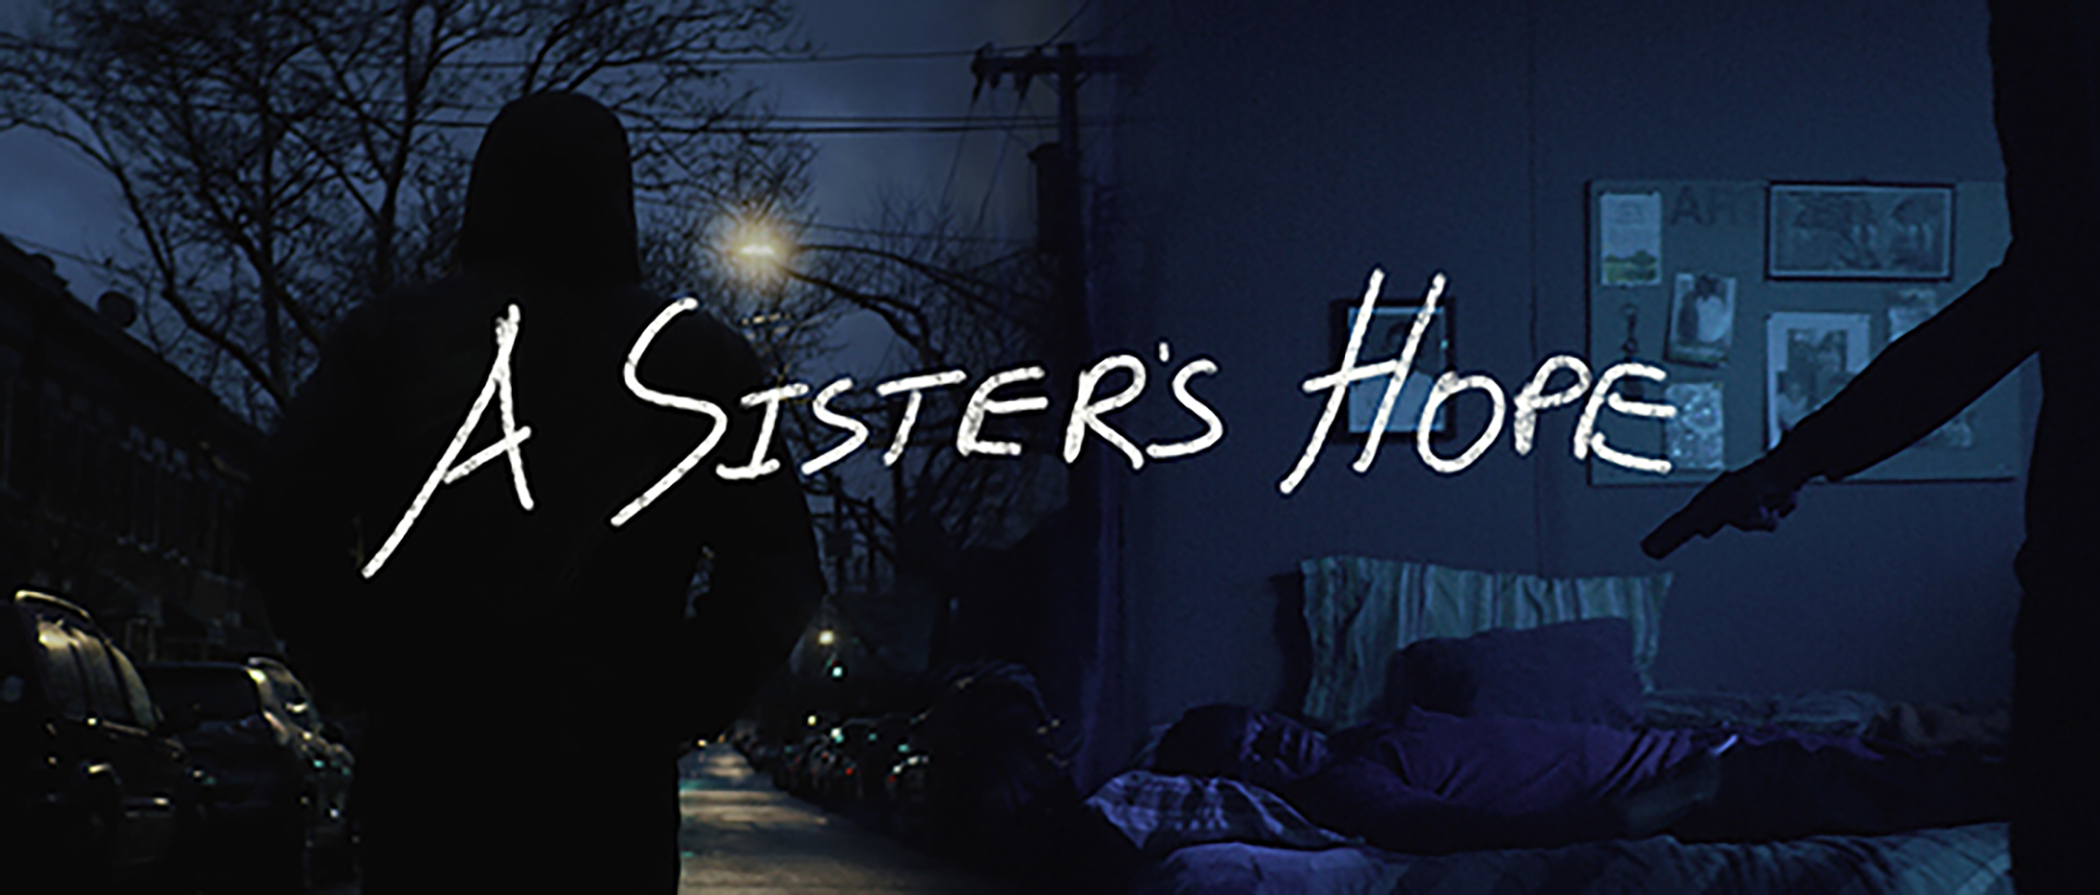 A Sisters Hope